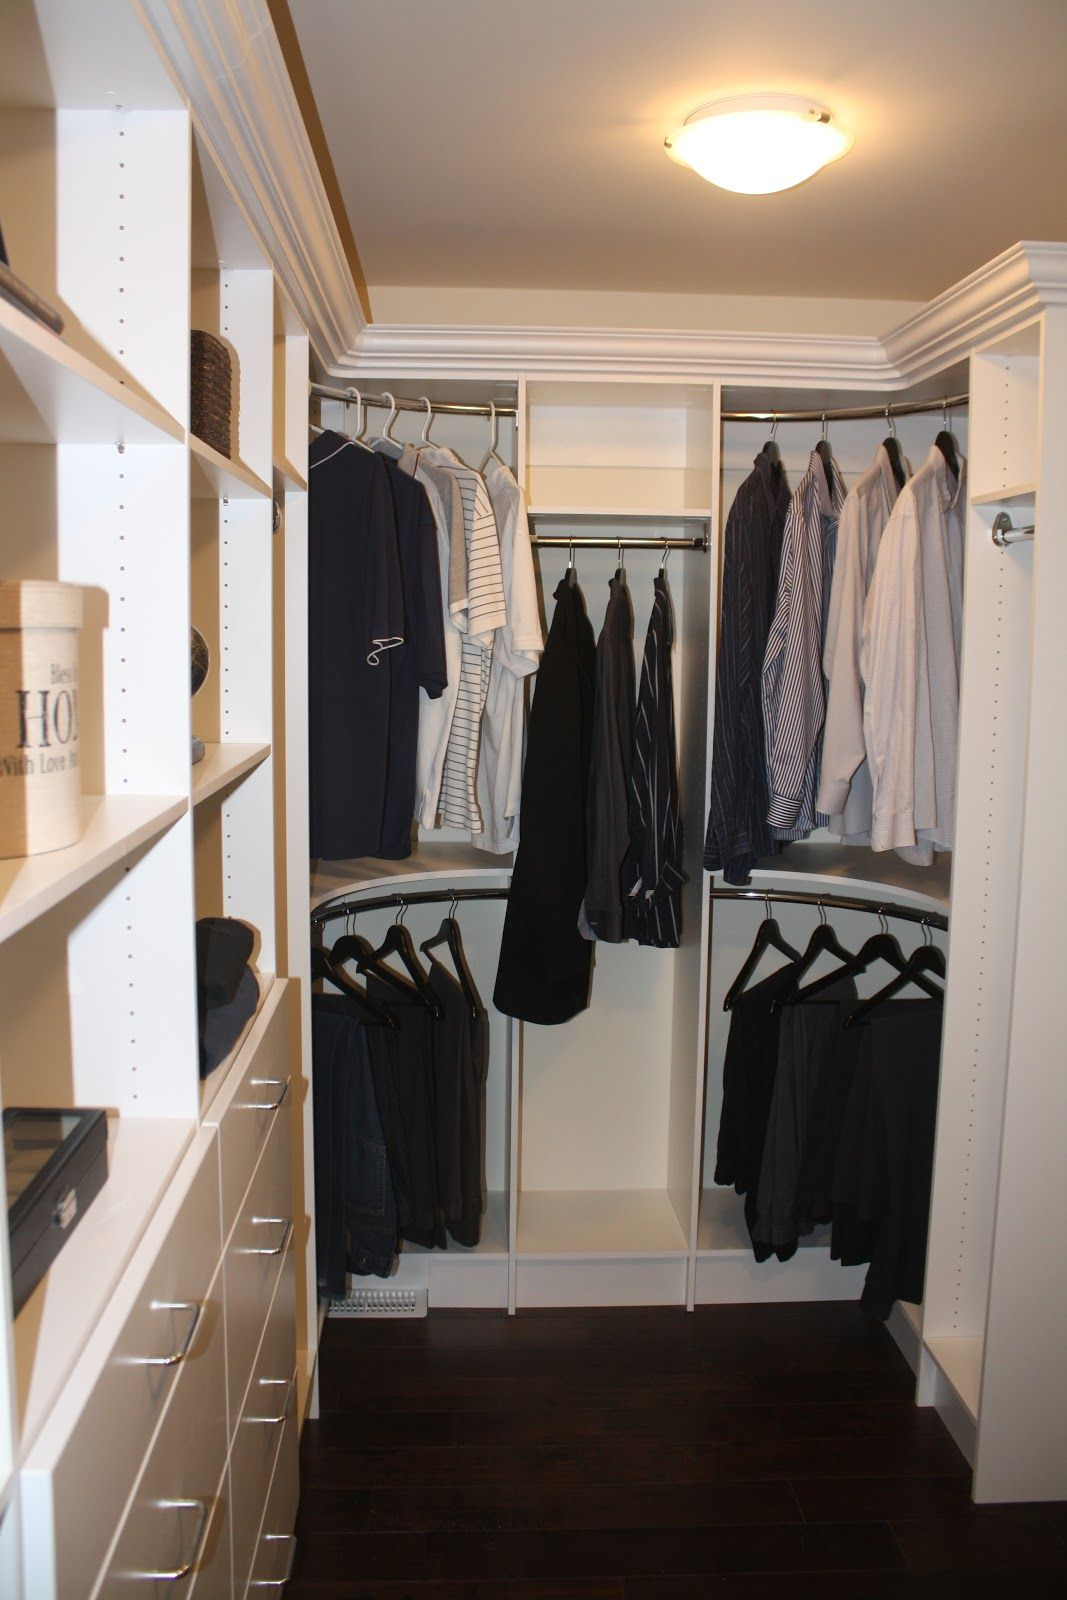 Curved Closet Rod Gorgeous This Is How I Want My Closet Corner Rods But With Custom Crown Design Inspiration